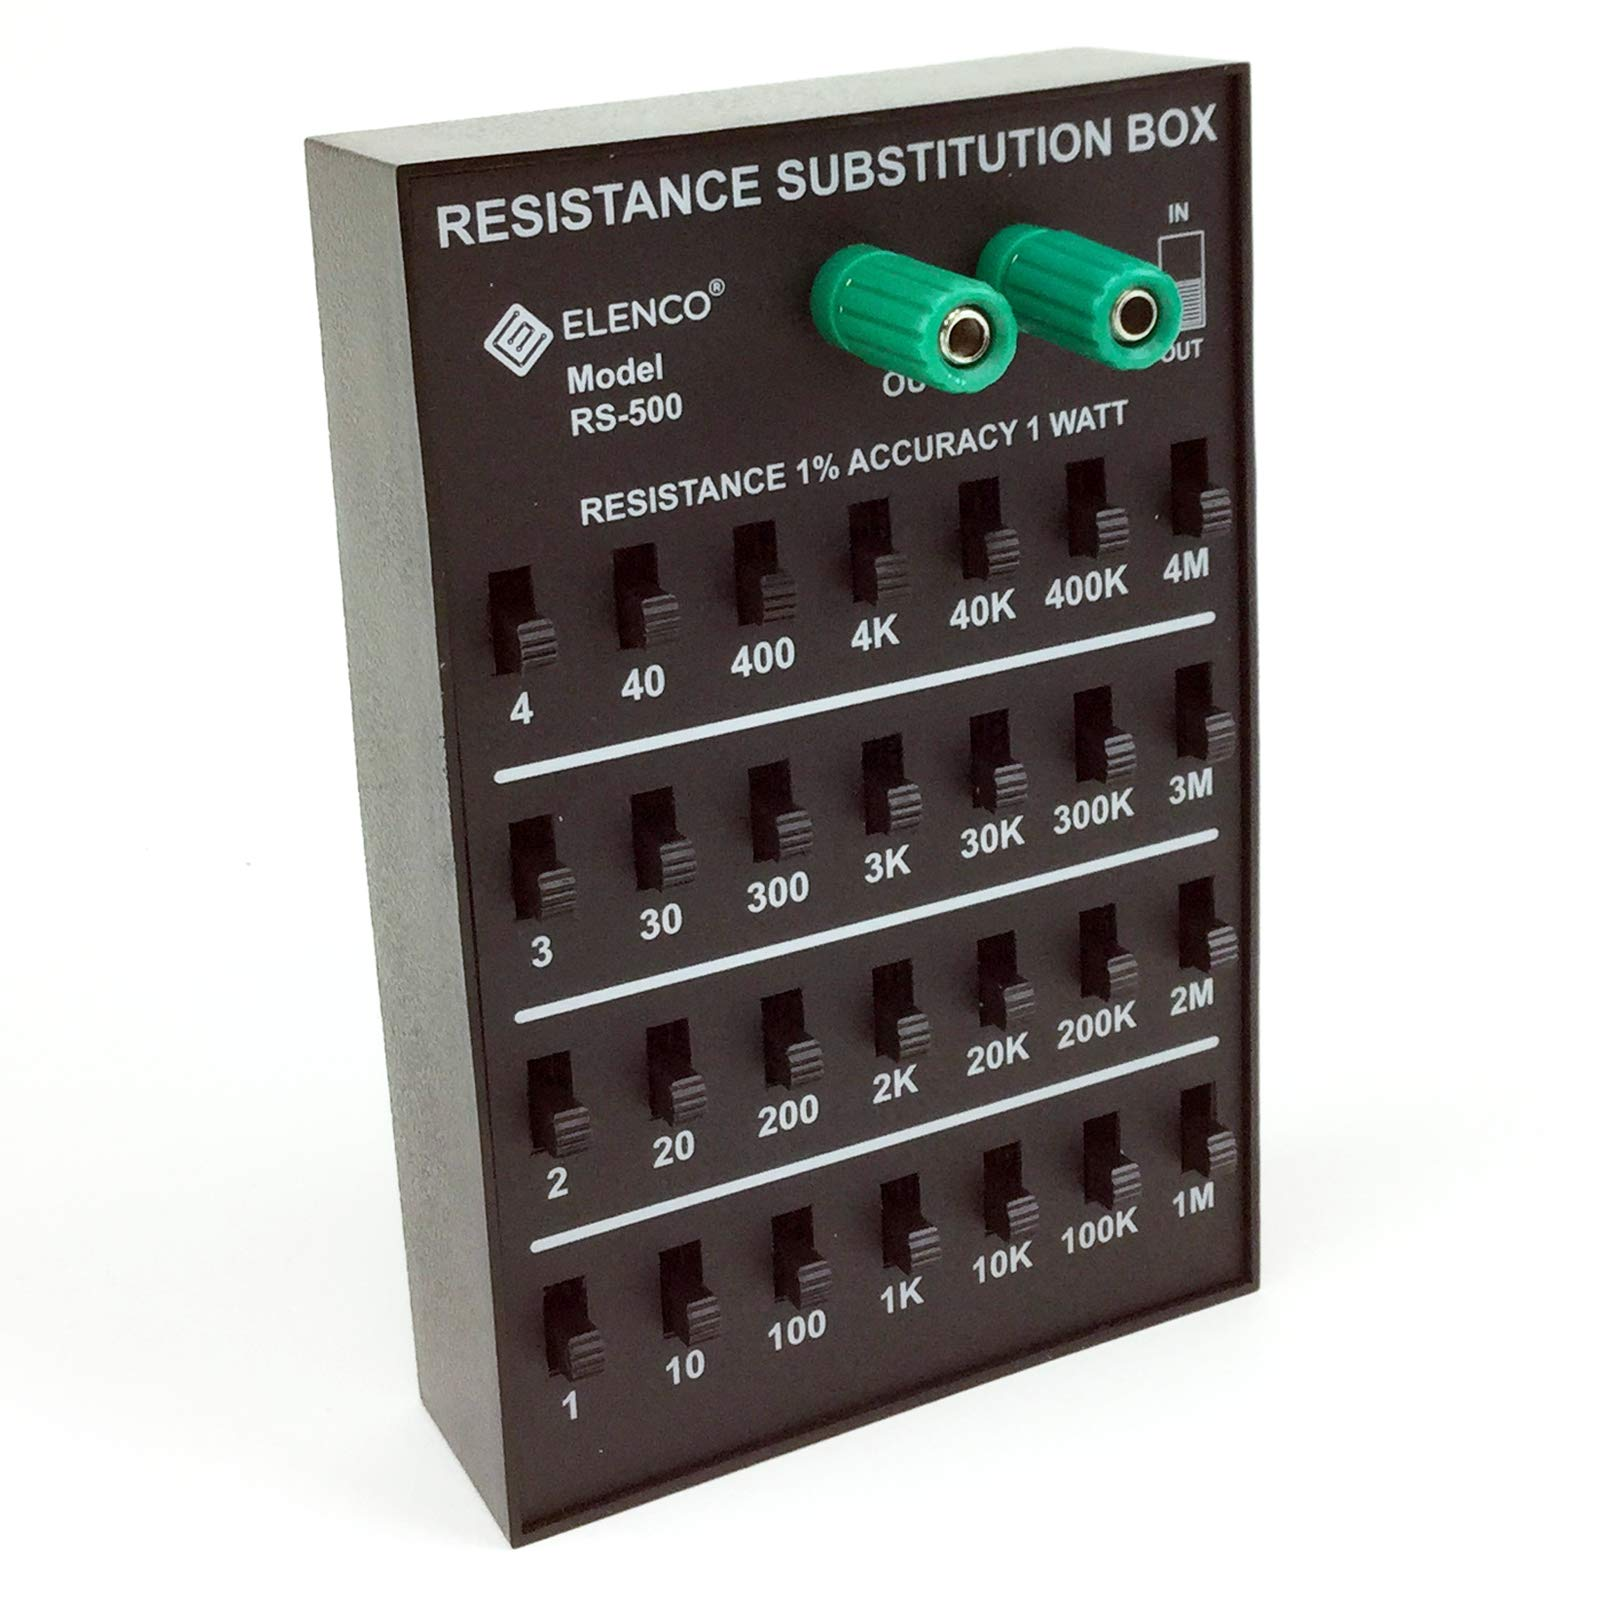 Elenco Resistance Substitution Box | Resistance Range From 1Ω To 11, 111 , 110MΩ  | 1% Precision: 1Ω-40kΩ- 1 Watt/ 100kΩ- 4MΩ- 1/2 Watt